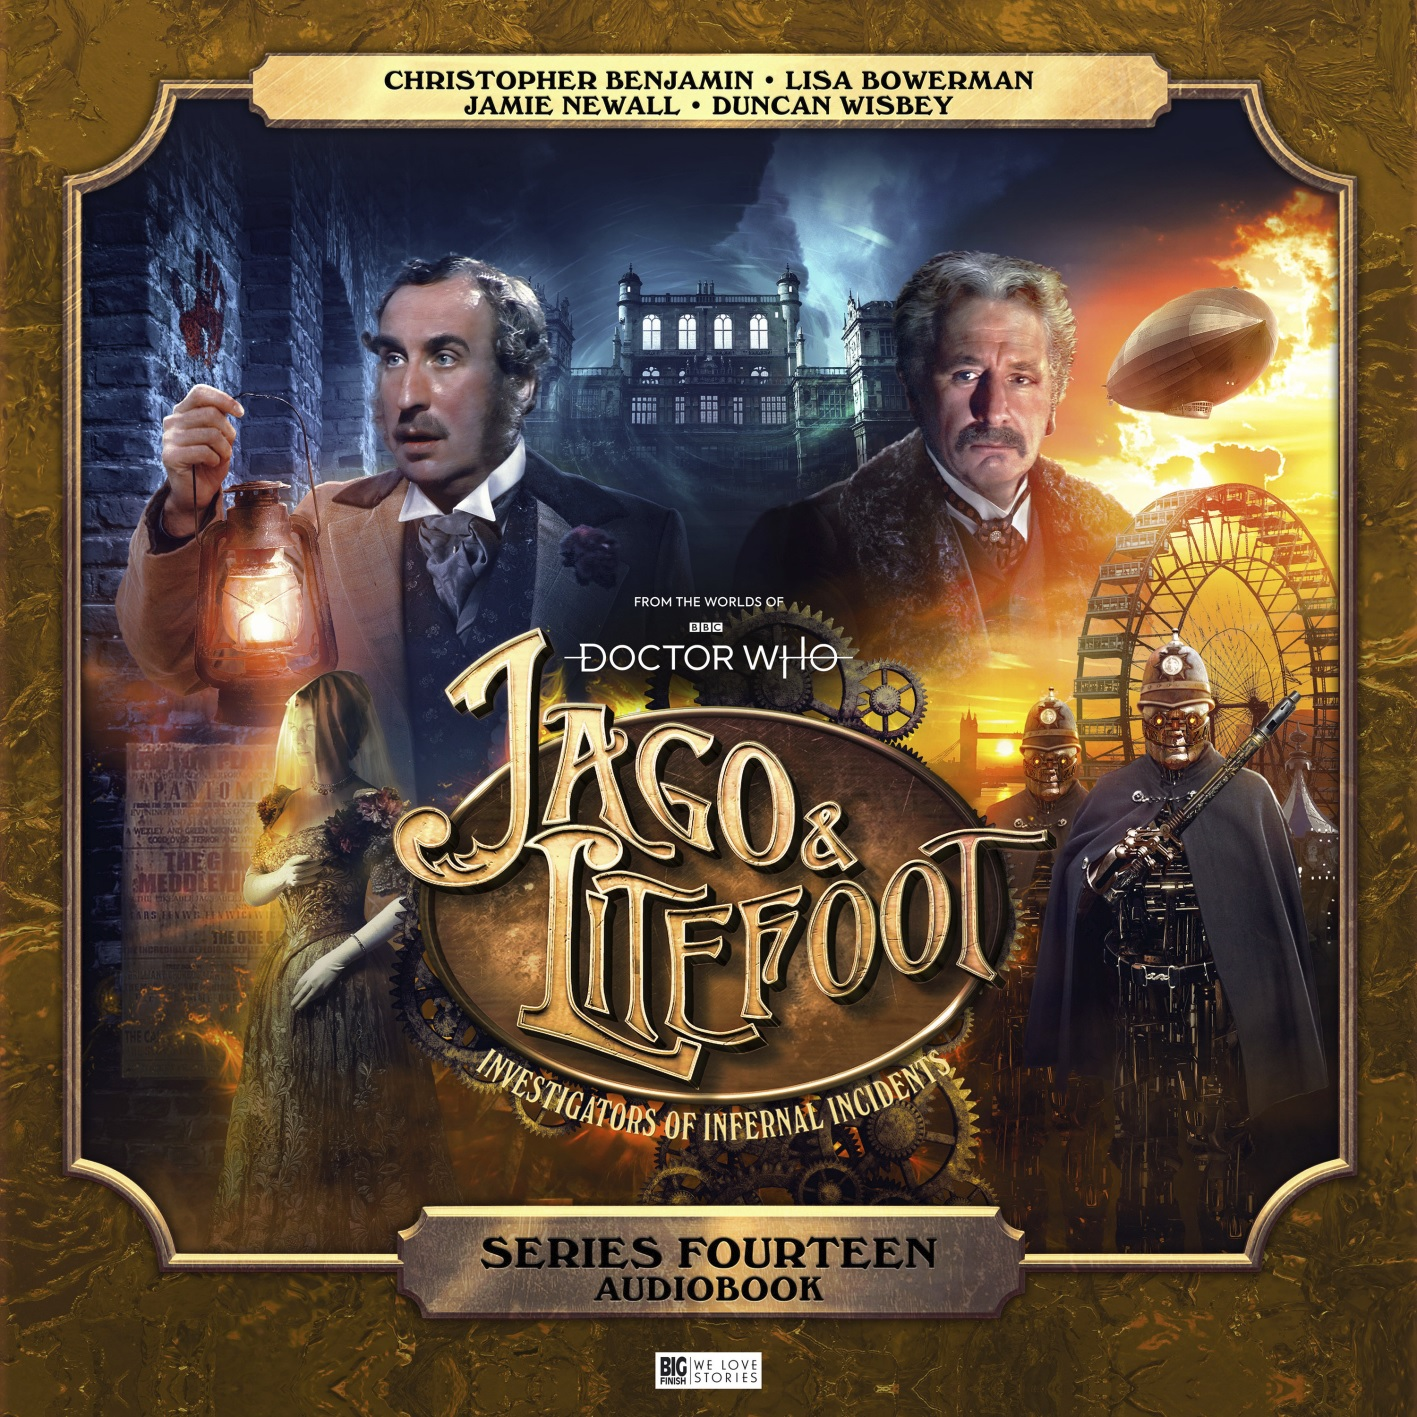 Big Finish's Infernal Investigators Are Back for Jago and Litefoot, Series 14